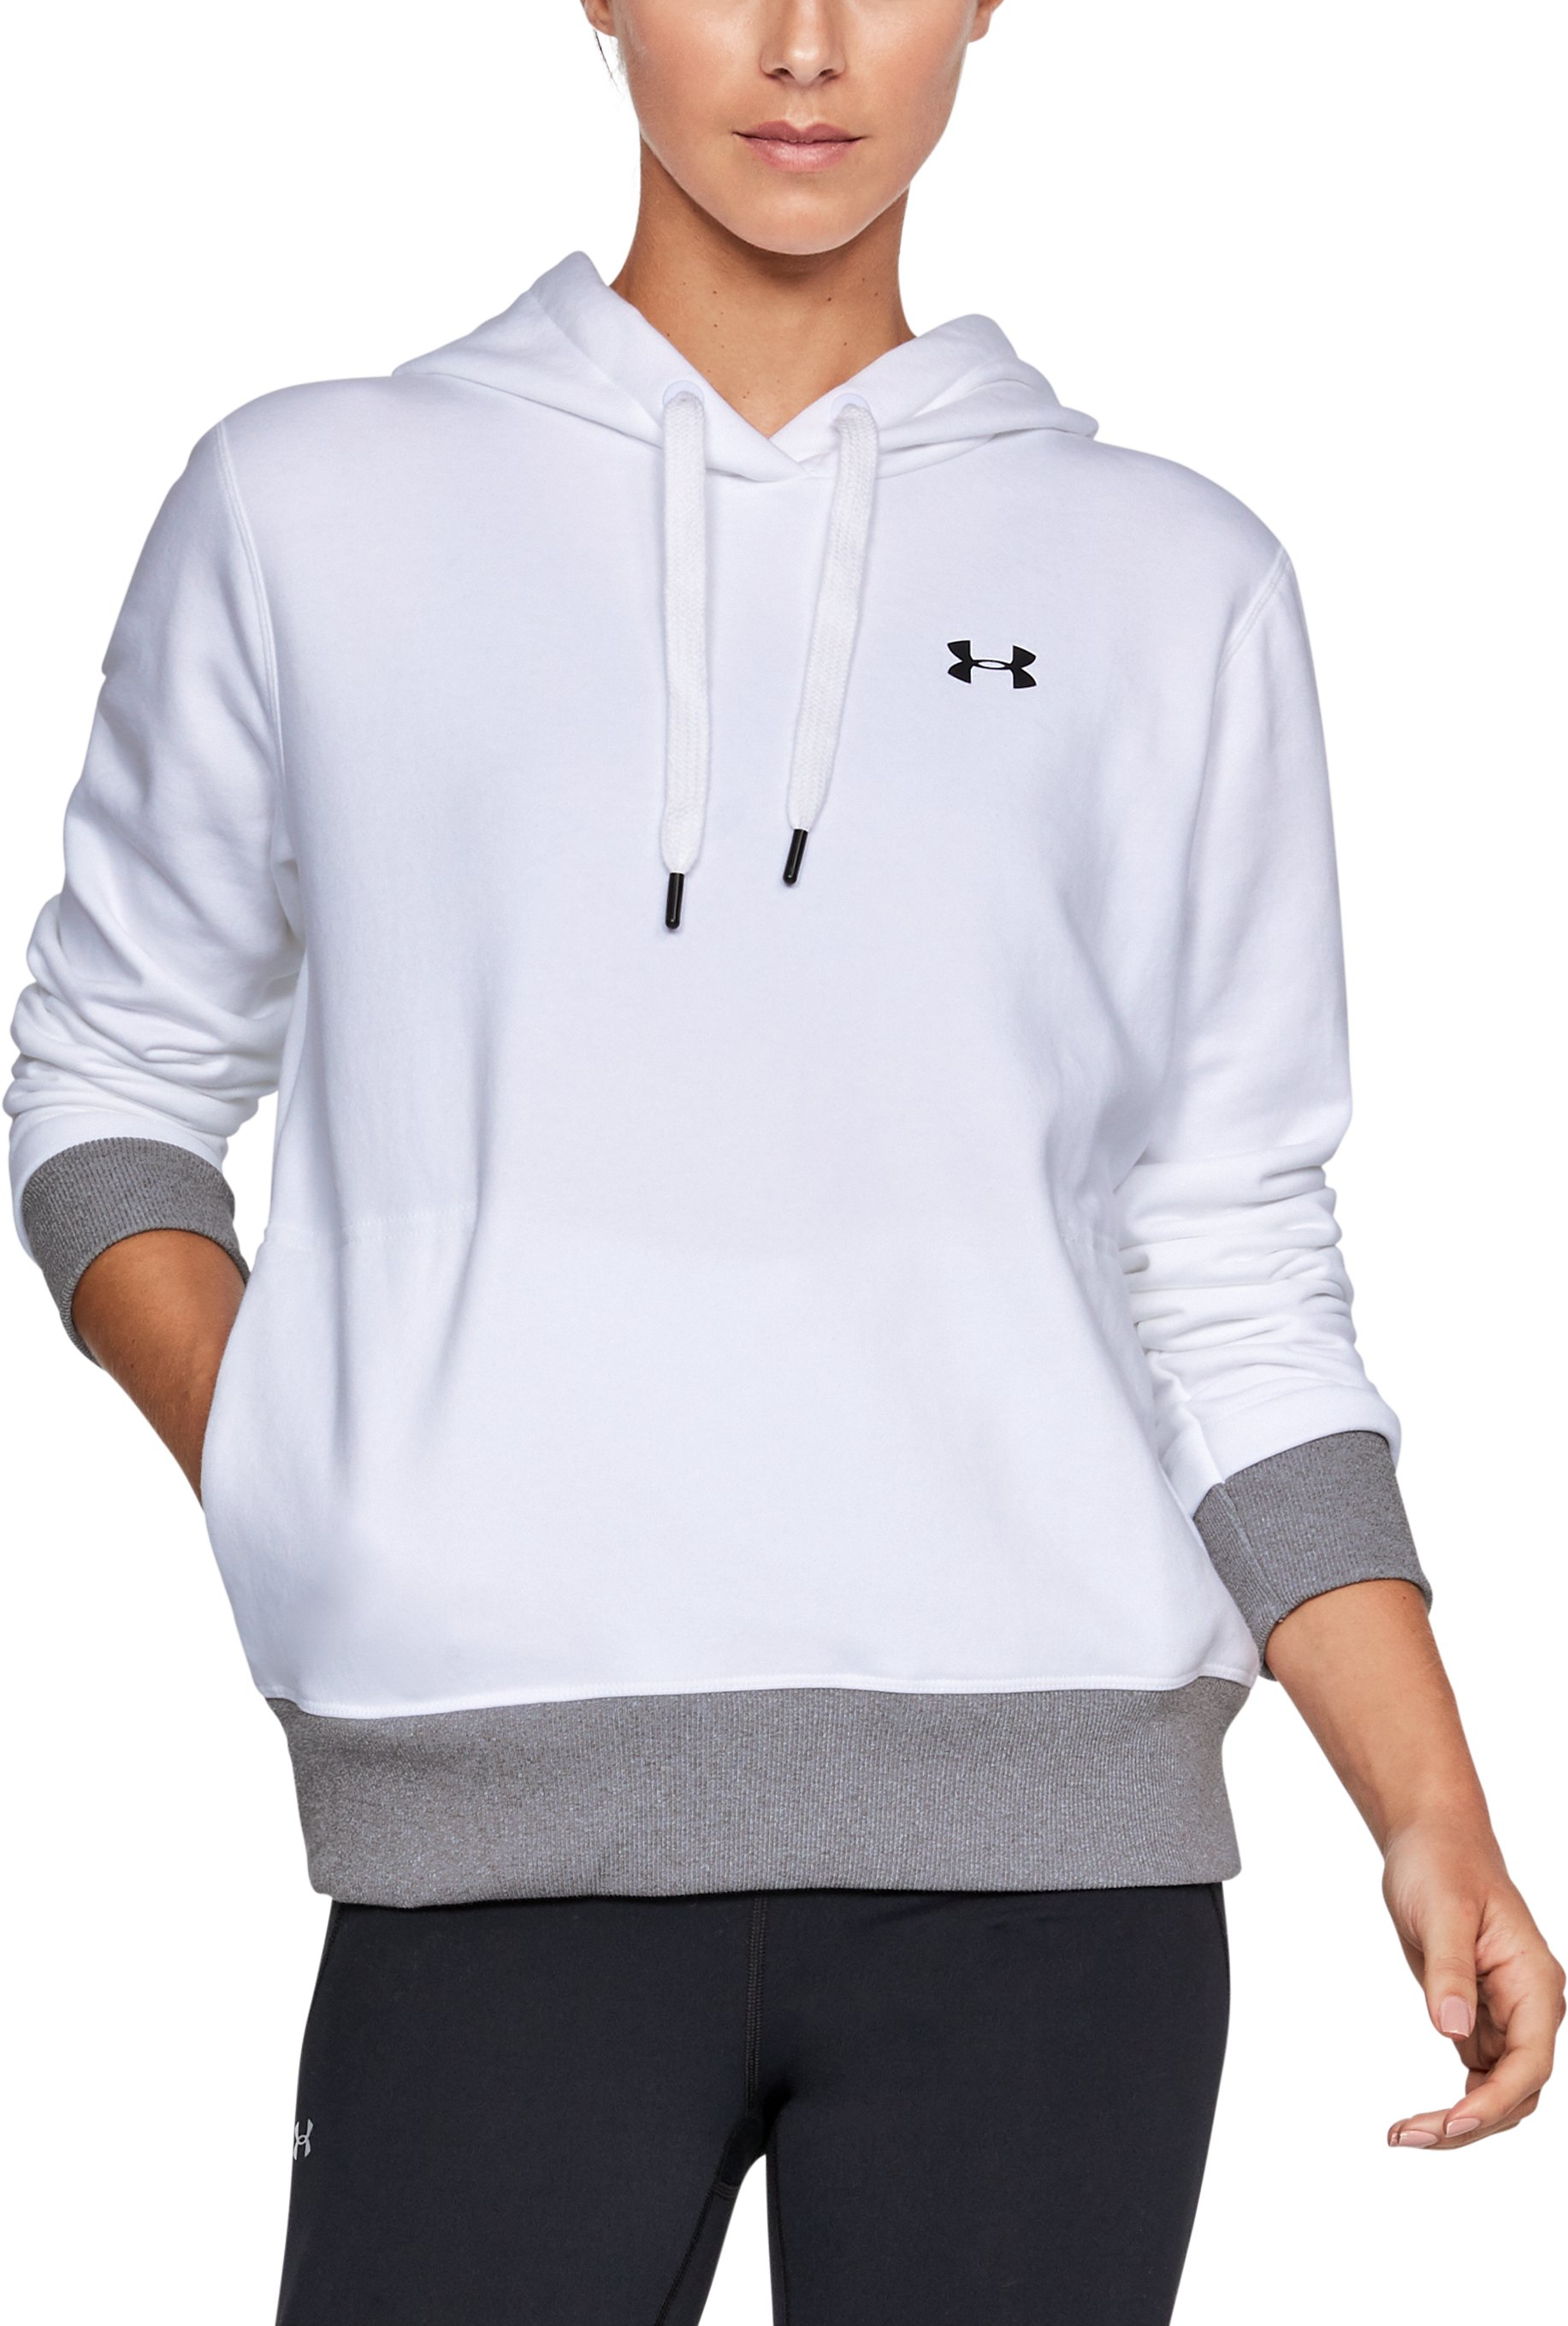 Women's UA x Project Rock Threadborne Fleece Hoodie, White, zoomed